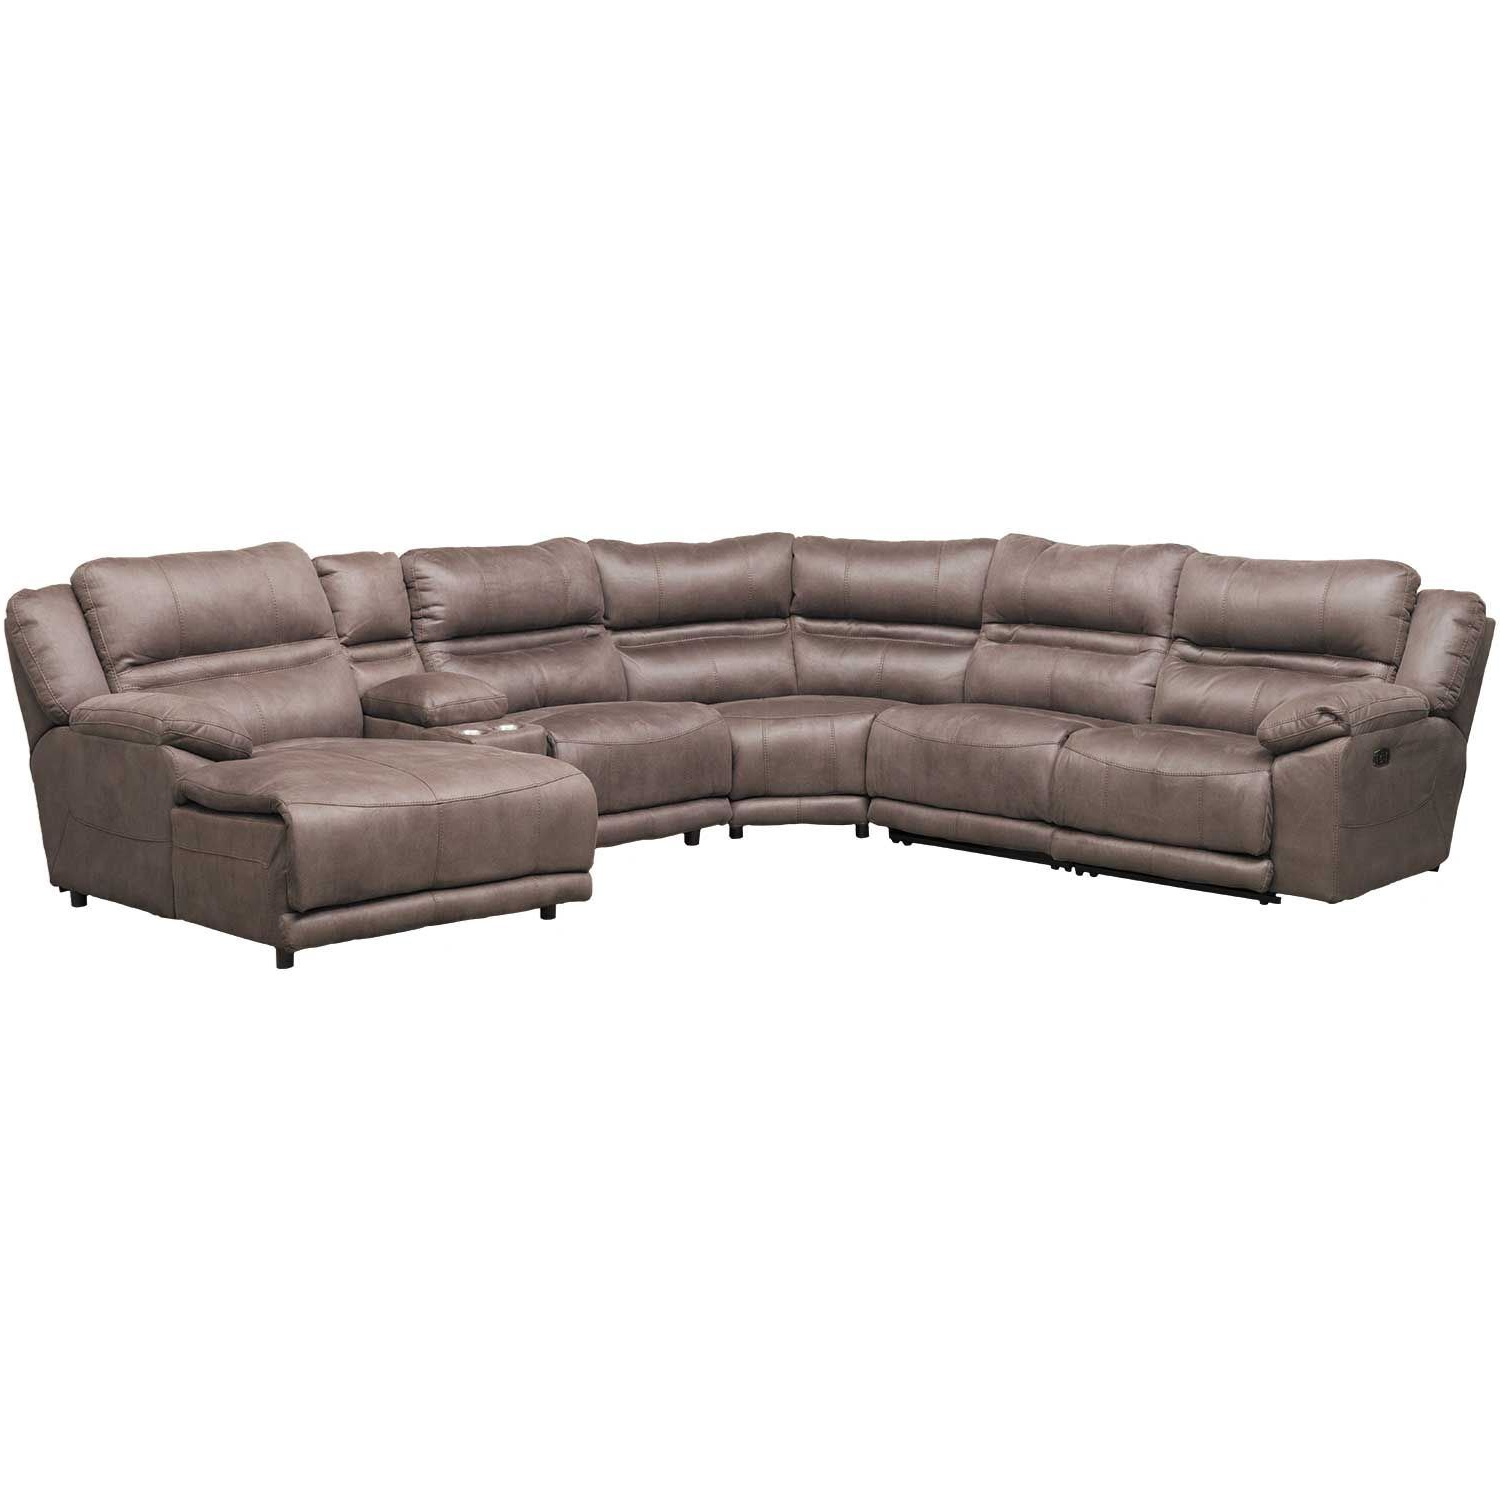 Jackson 6 Piece Power Reclining Sectionals With Sleeper For Widely Used Braxton 6 Piece Power Reclining Sectional With Adjustable Headrest (View 3 of 20)